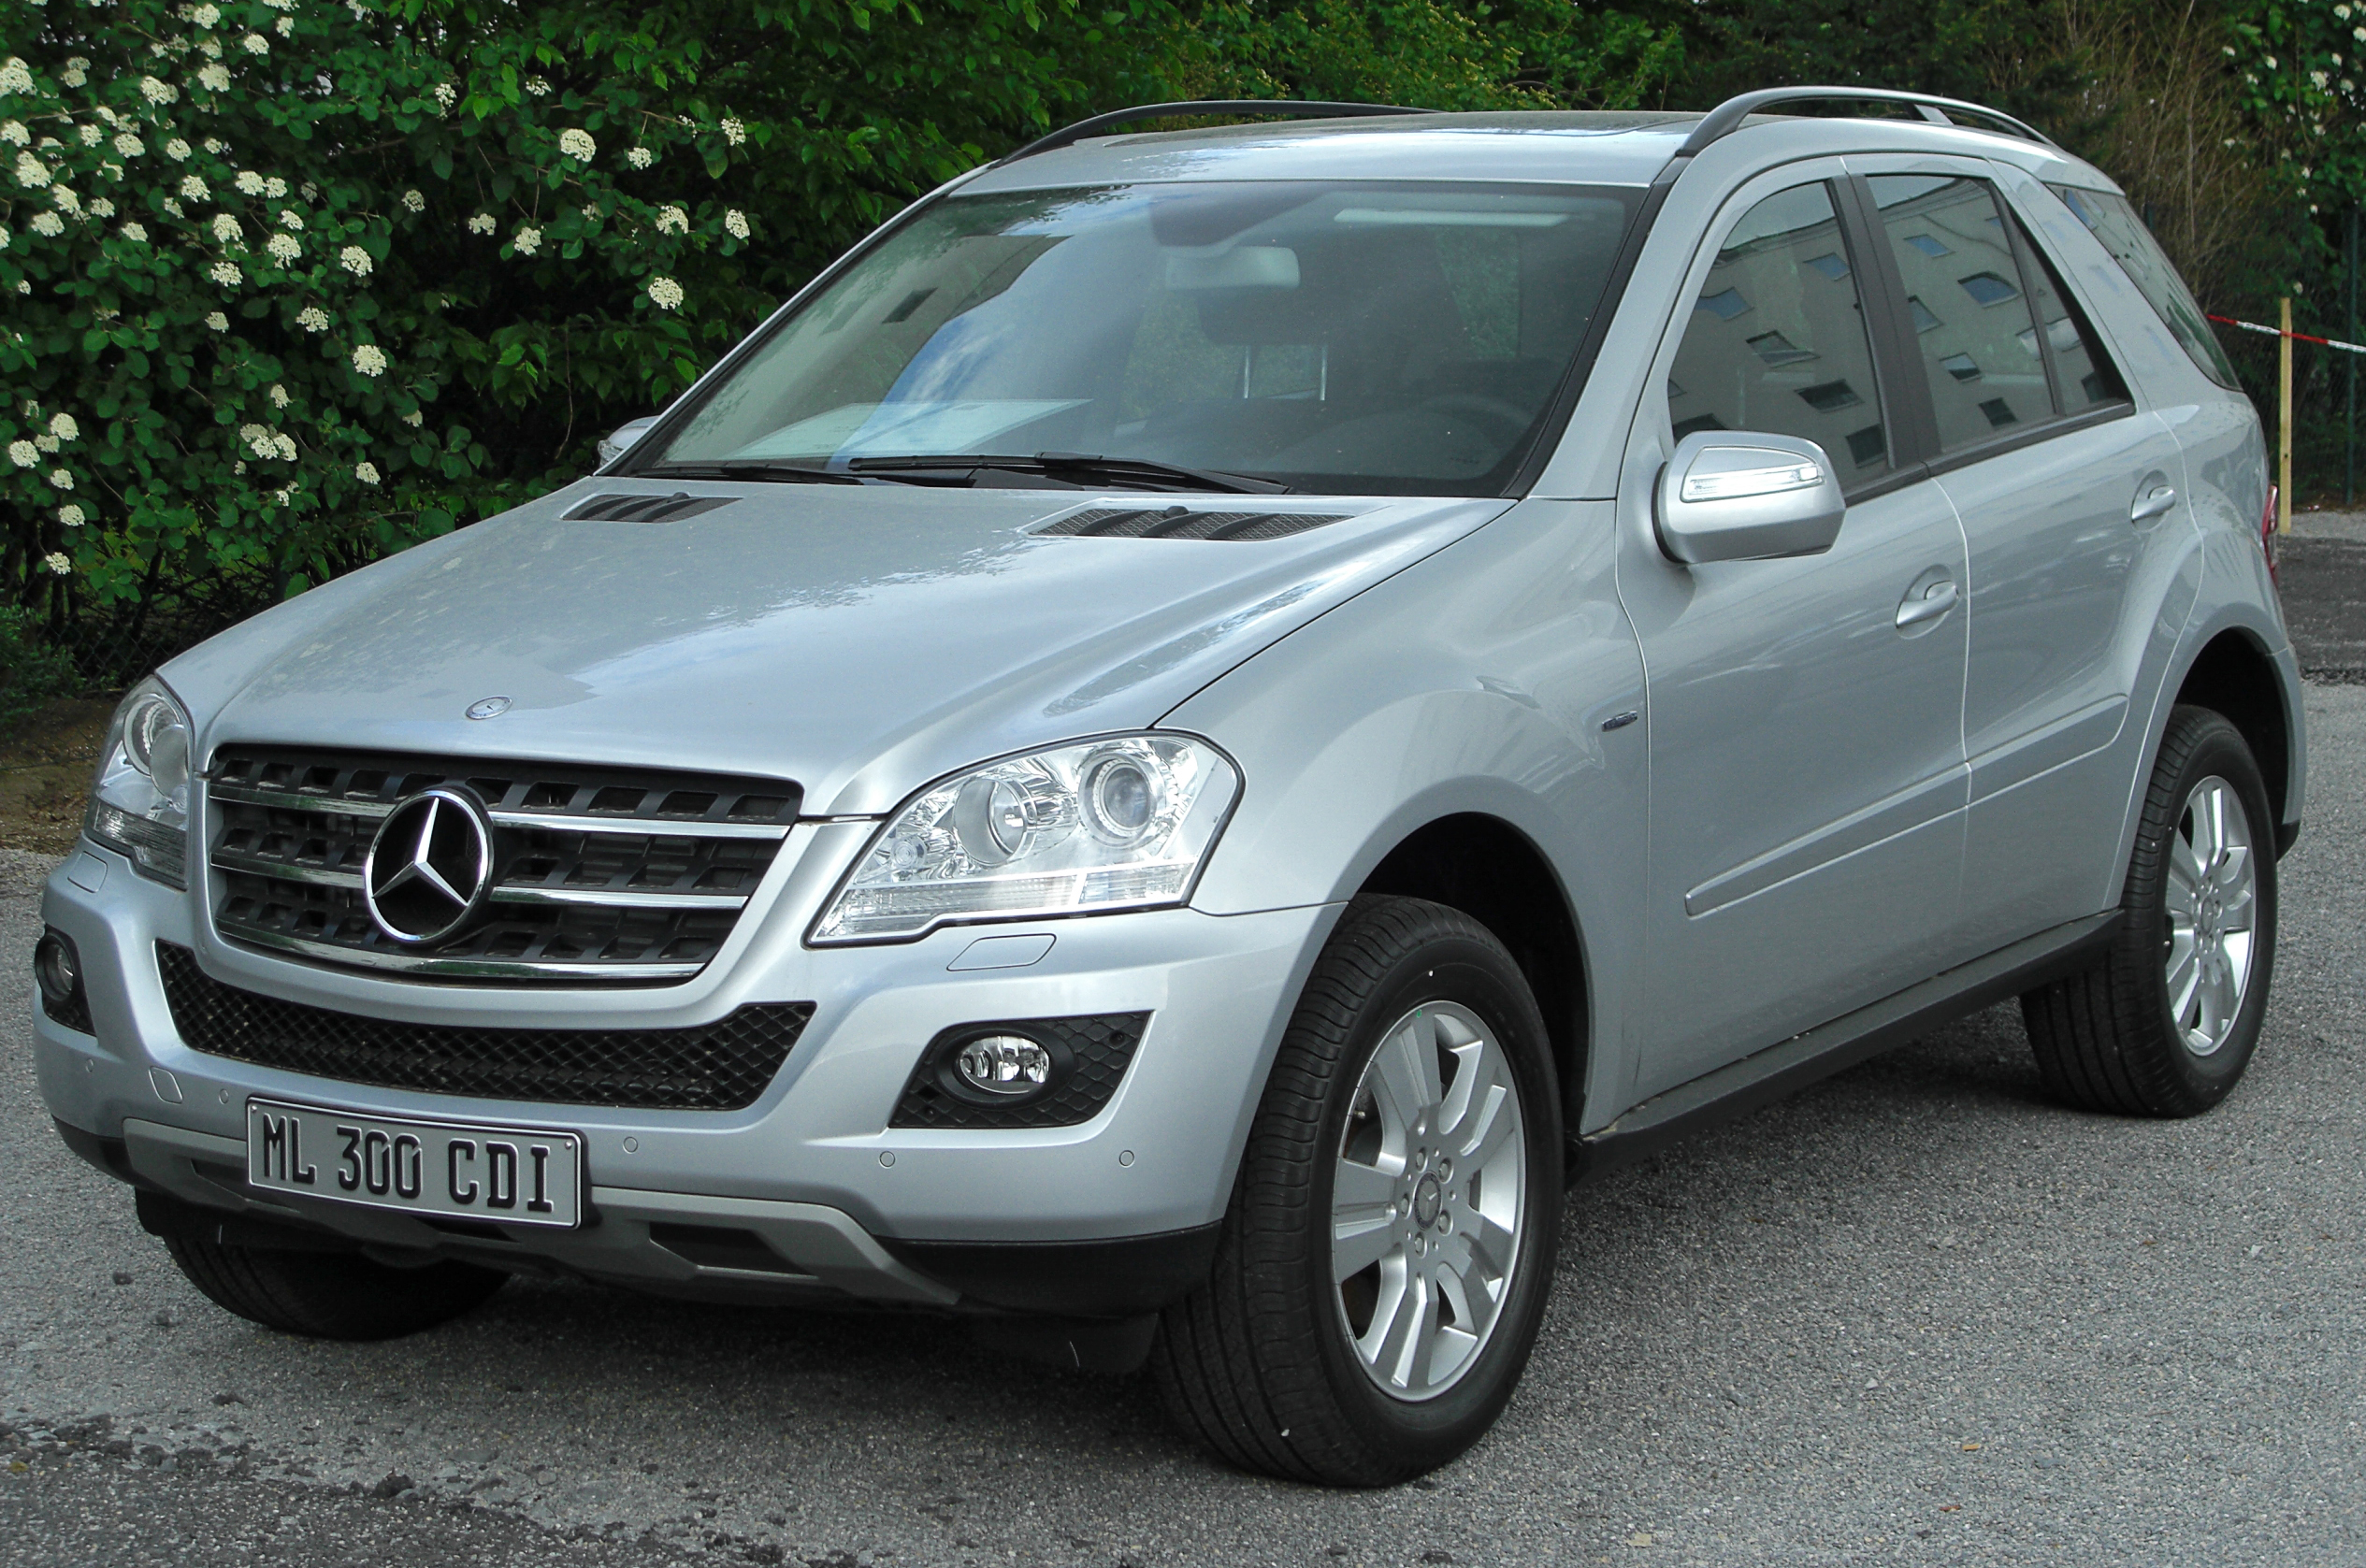 review cdi auto benz amg mercedes express bluetec gl sel